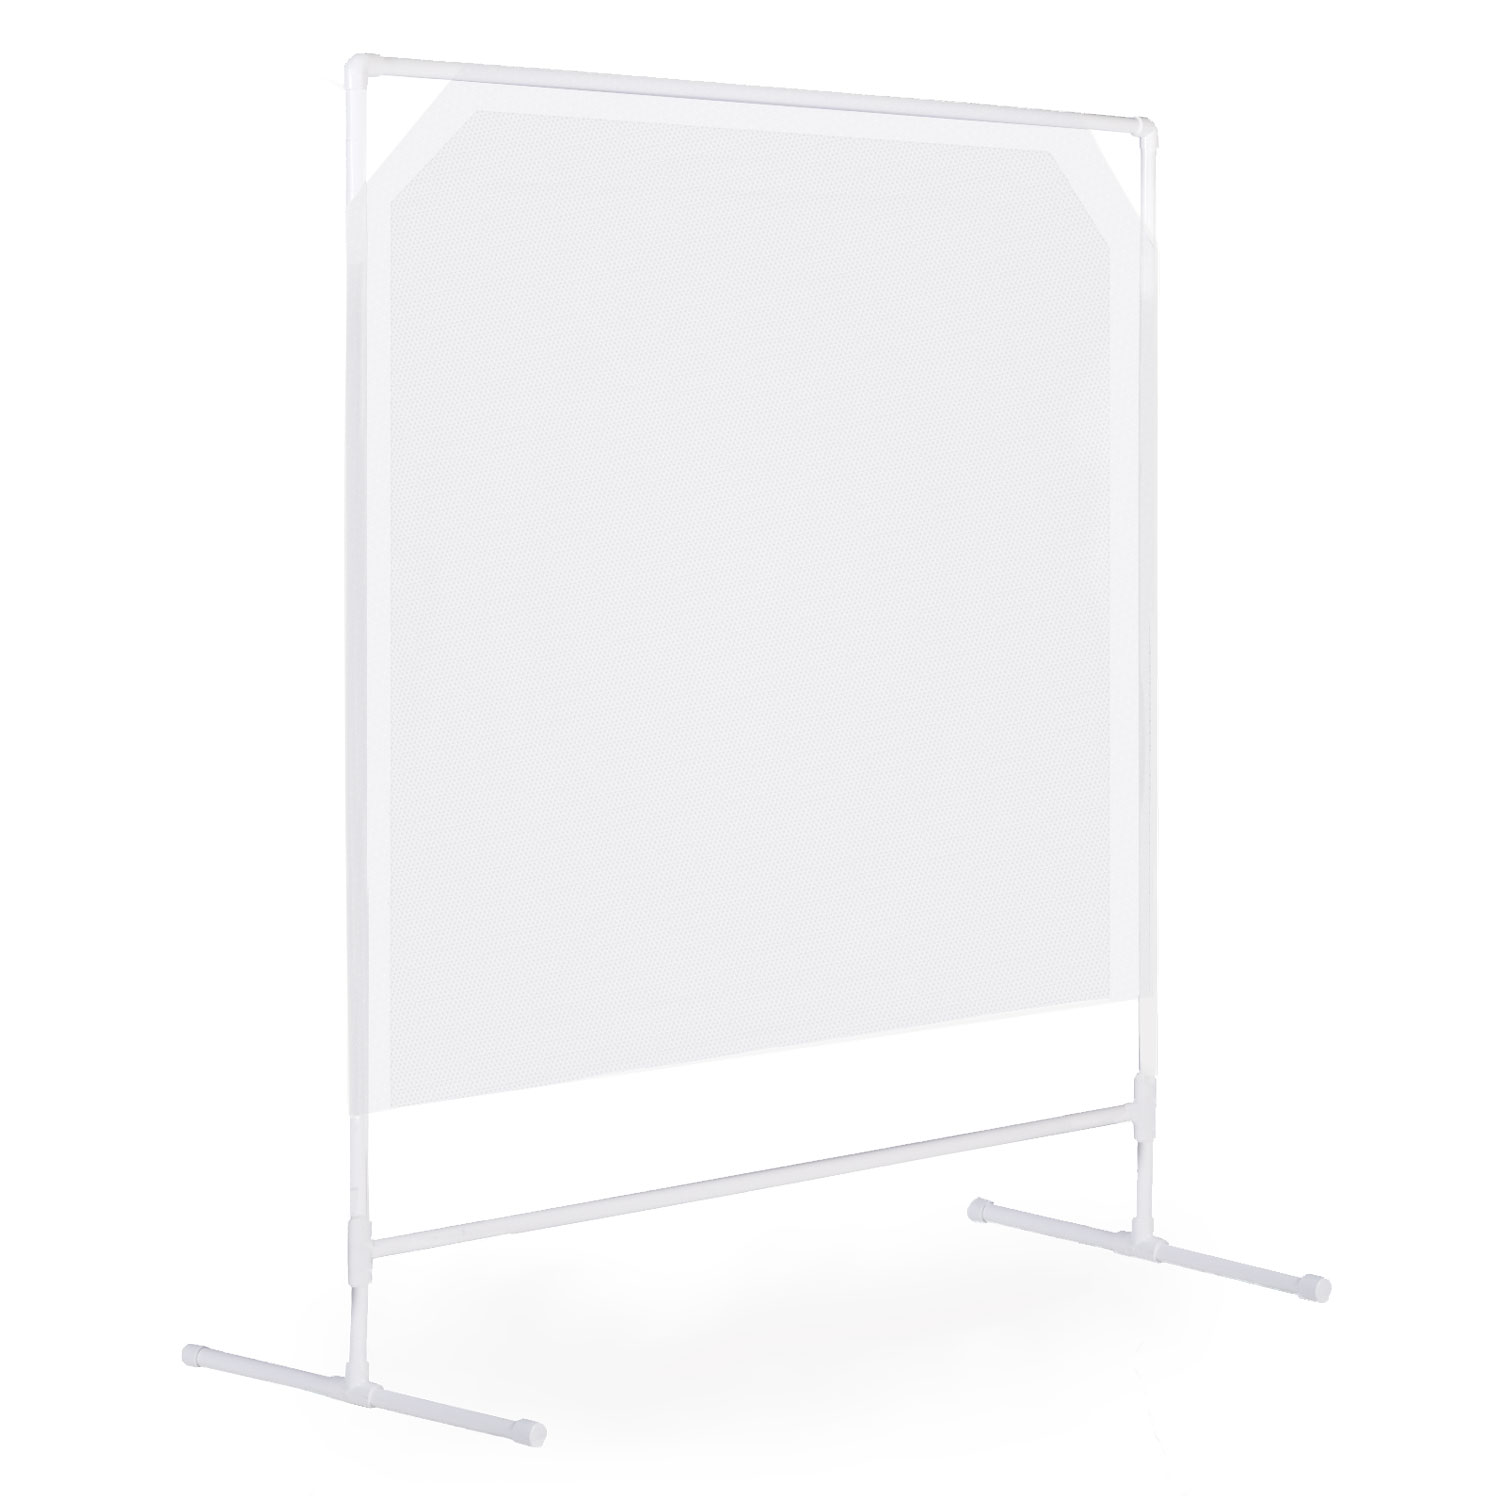 Opaque Floor Standing Barrier Screens image